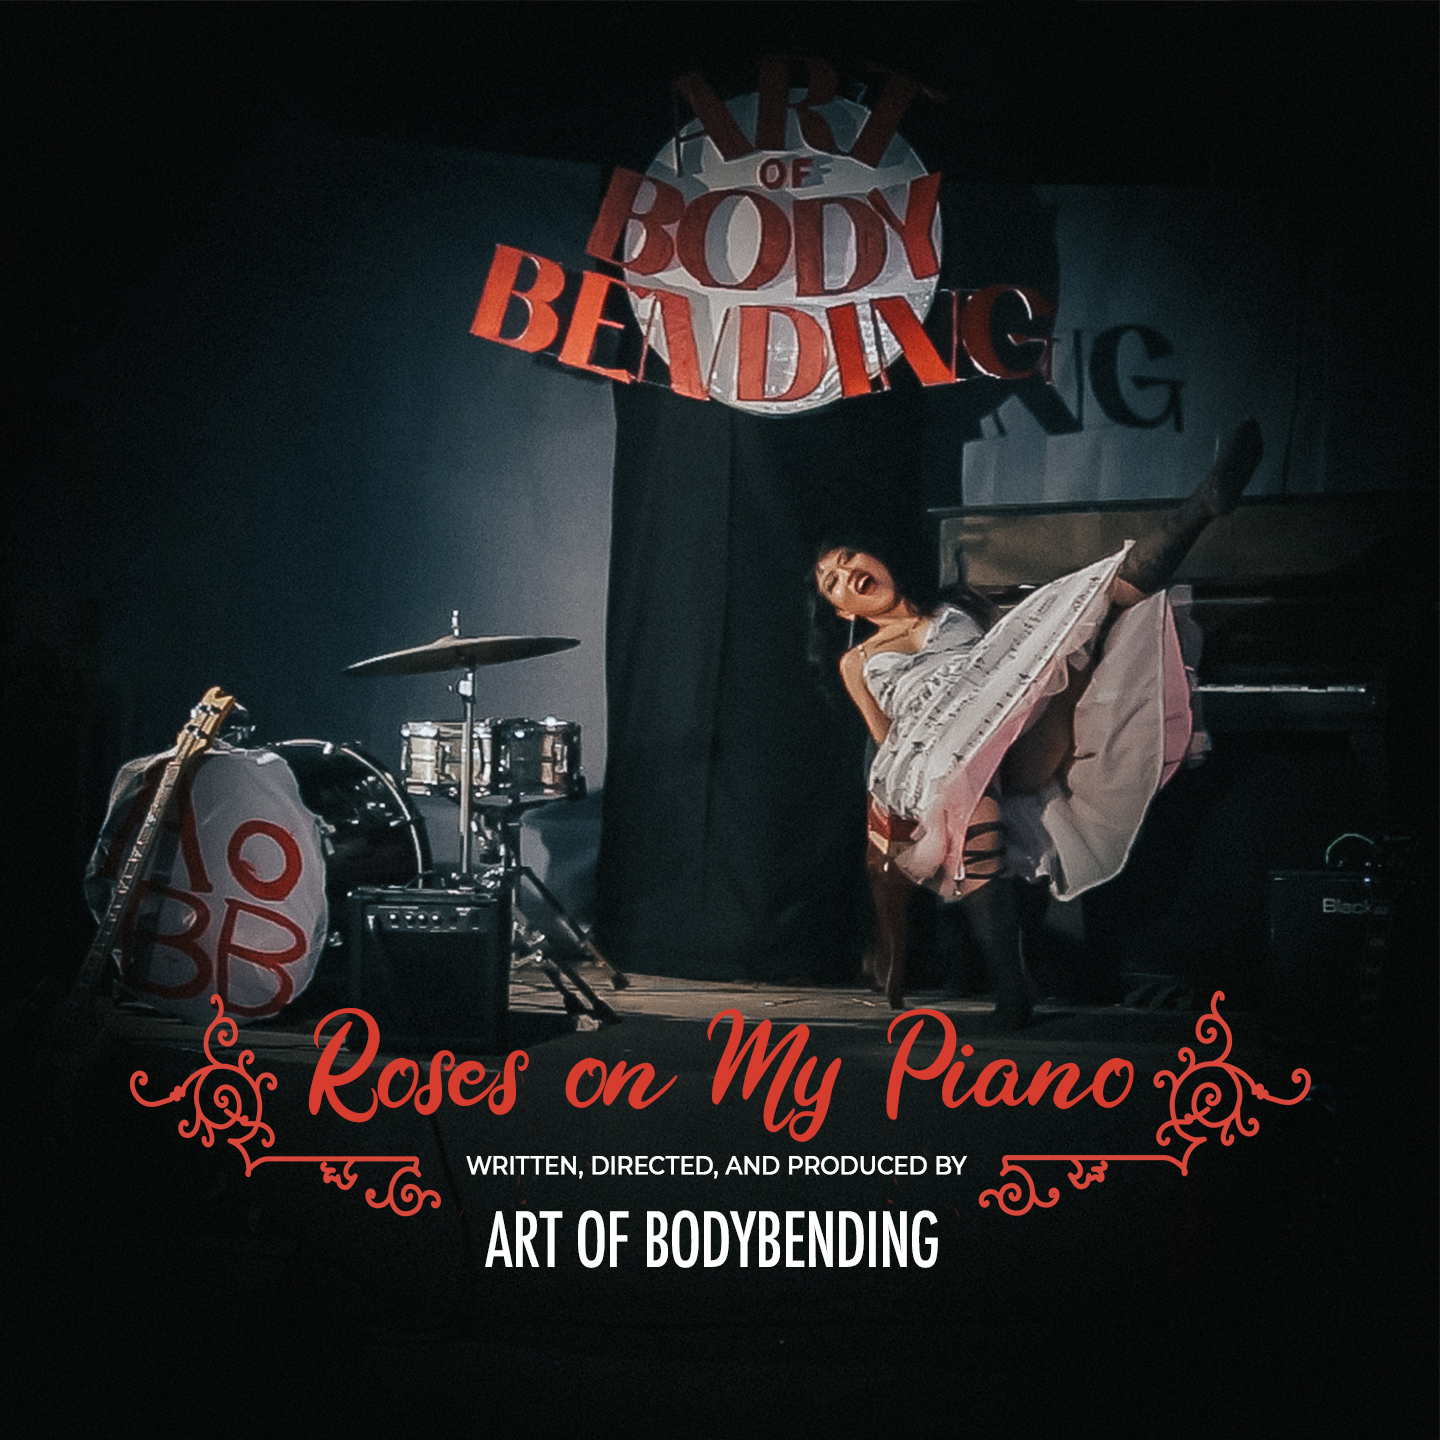 Art of Bodybending Takes You Between the Past and the Future with her New Single